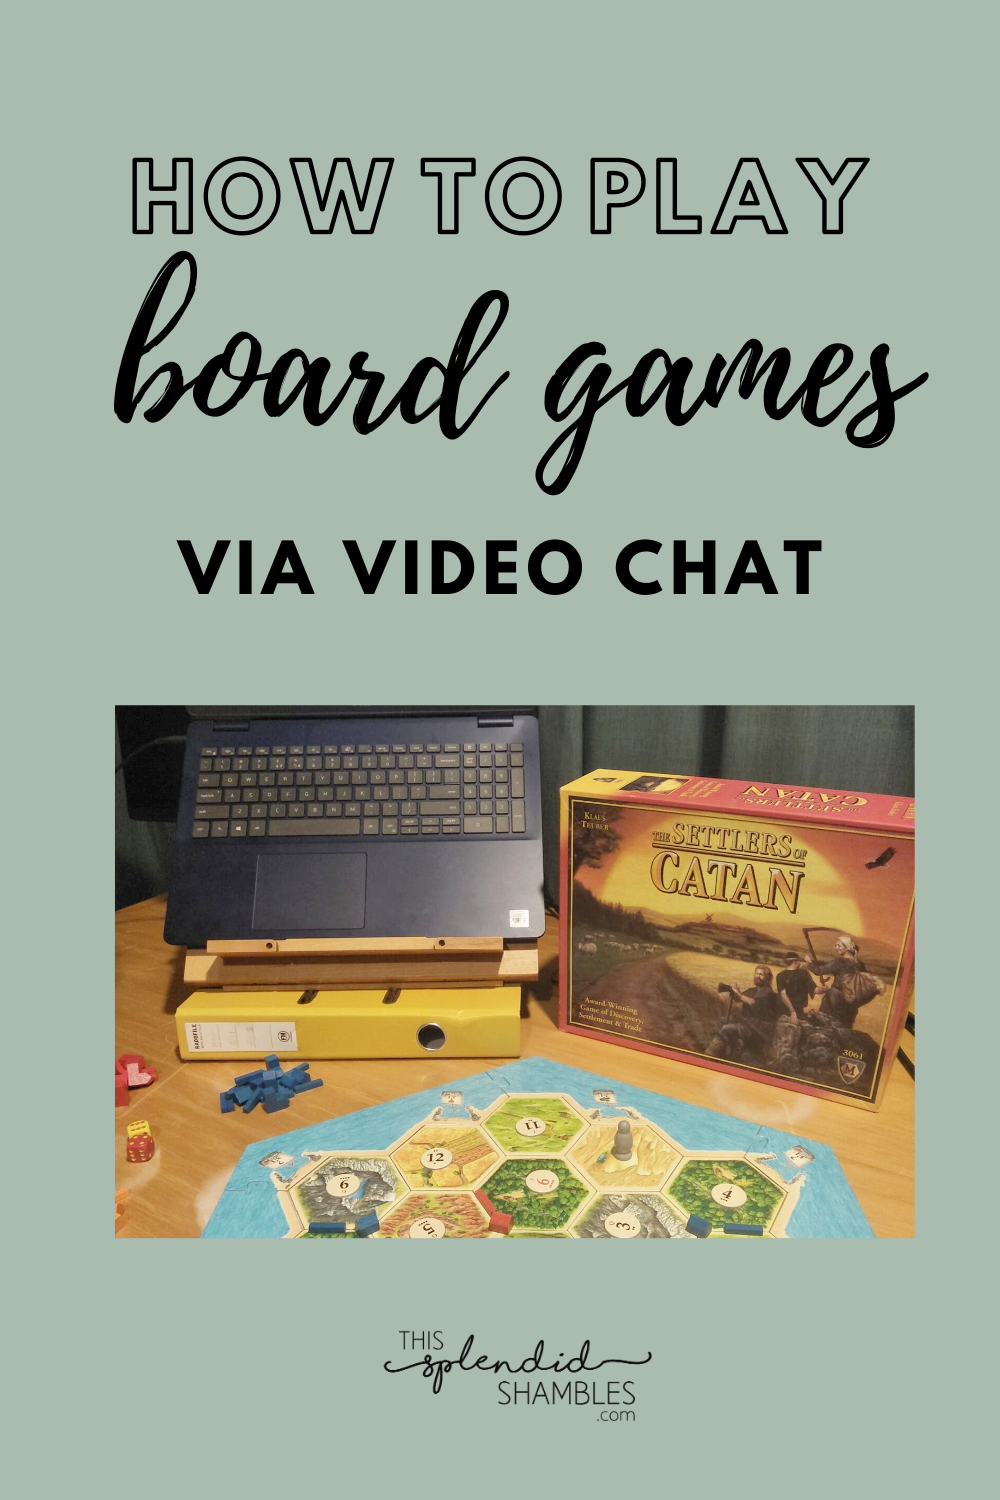 How To Play Settlers Of Catan Via Vidio Chat During Self